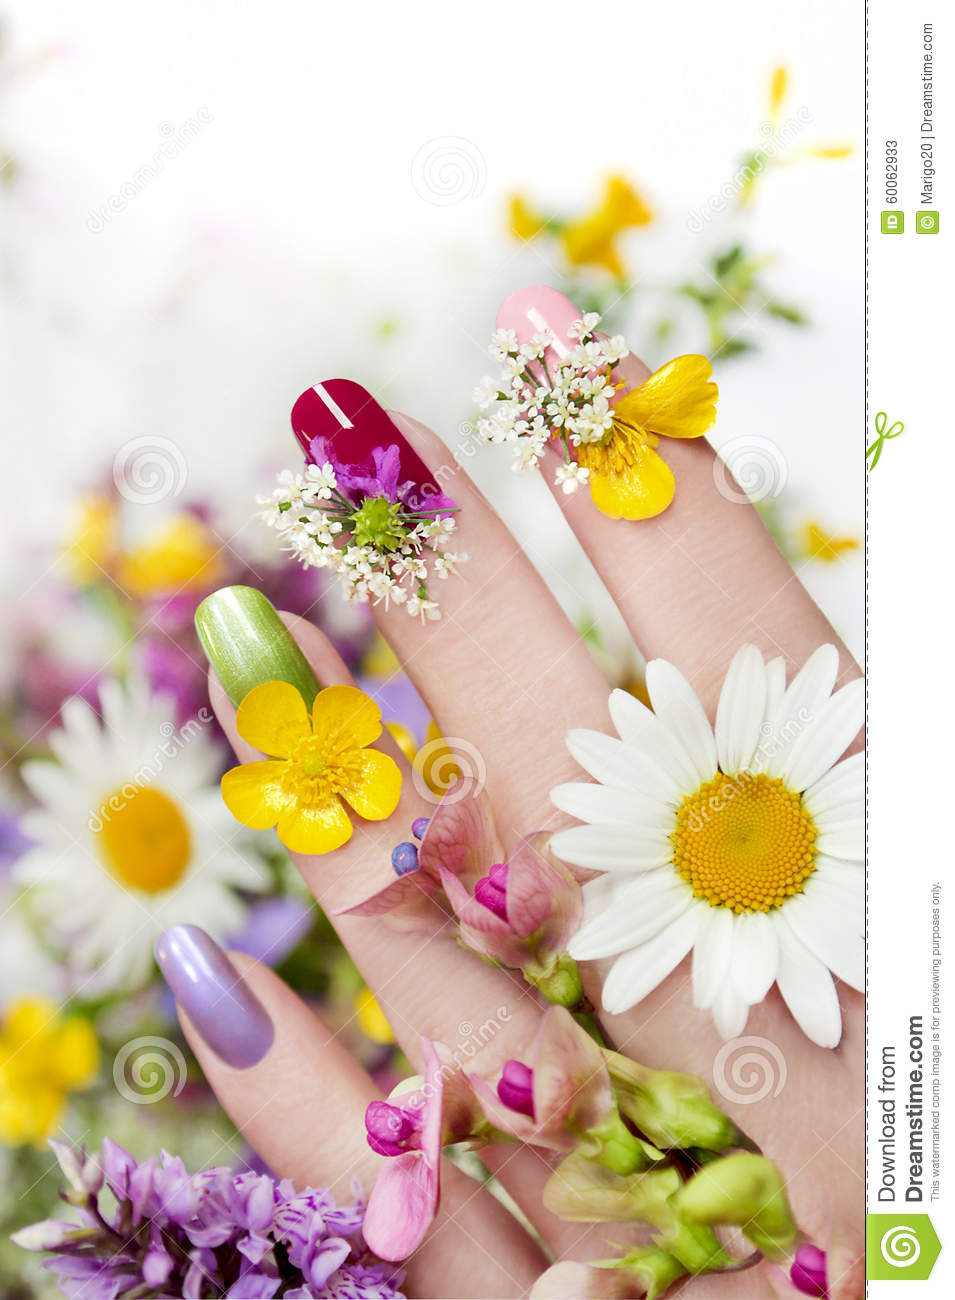 Nail design with flowers and colored lacquer on a woman